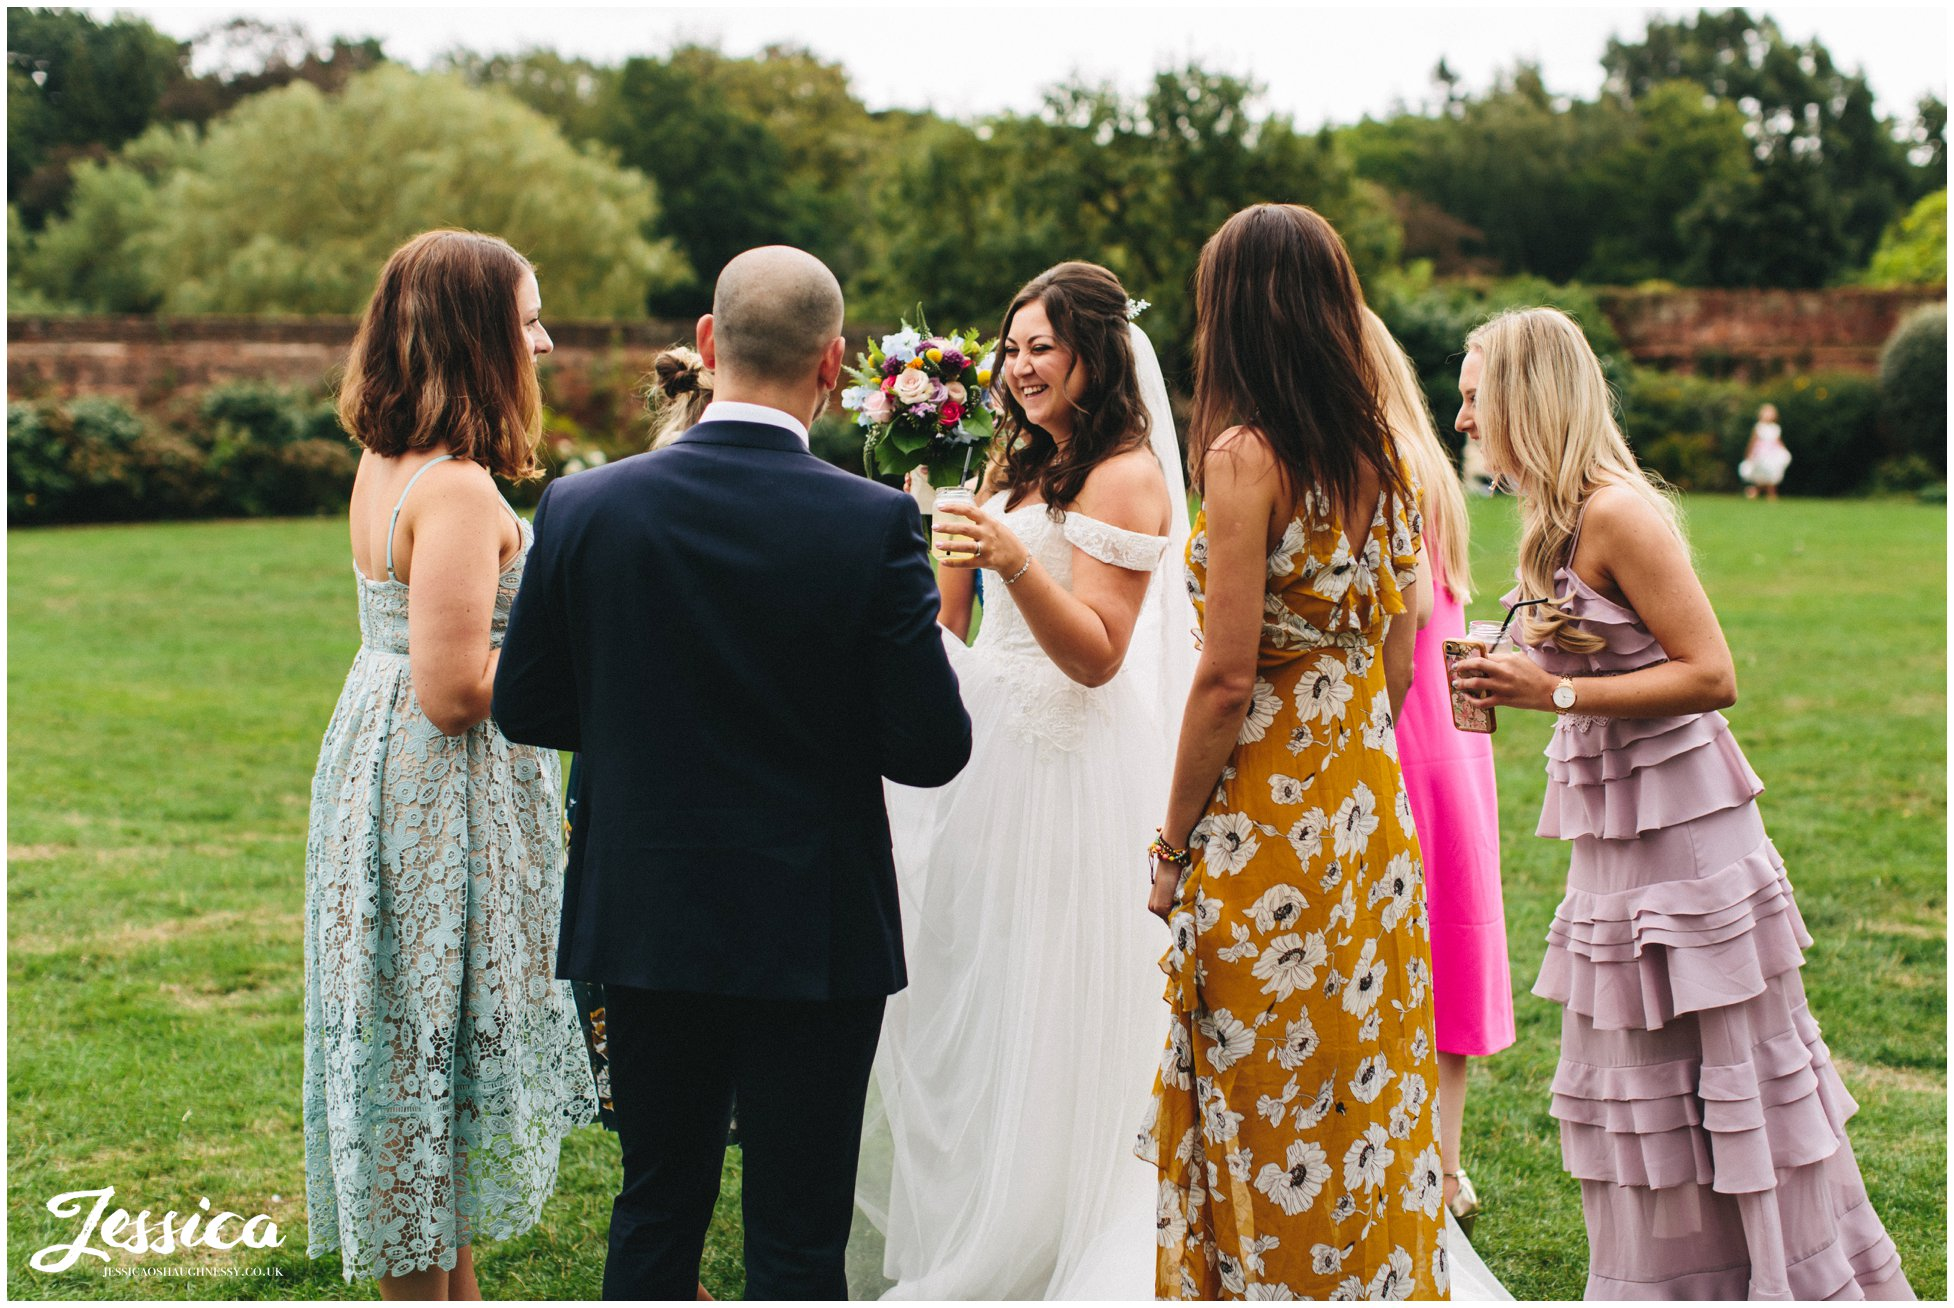 the bride laughs with her friends